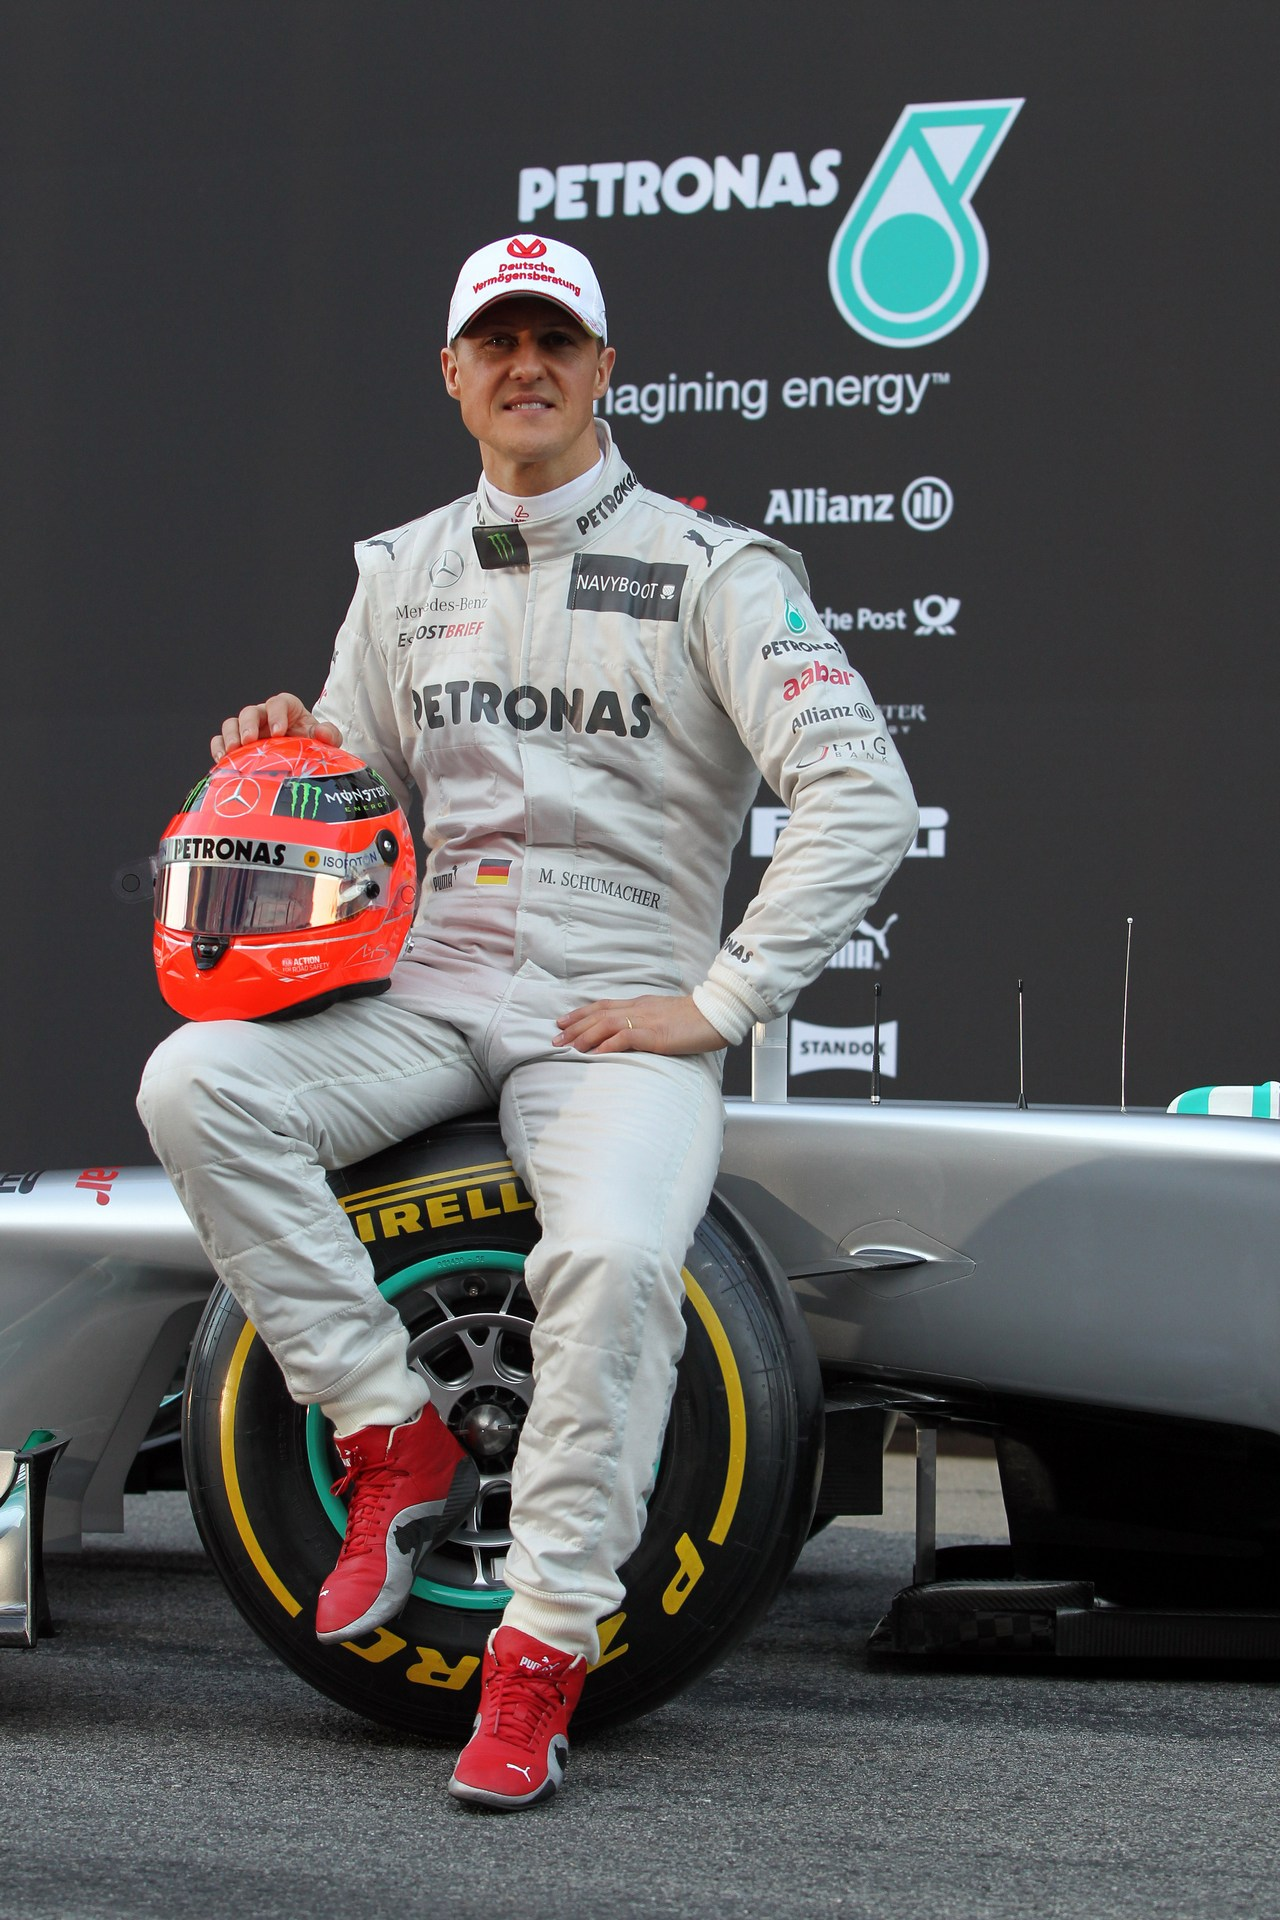 21.02.2012 Barcelona, Spain, Michael Schumacher (GER), Mercedes GP- Mercedes F1 W03 Launch